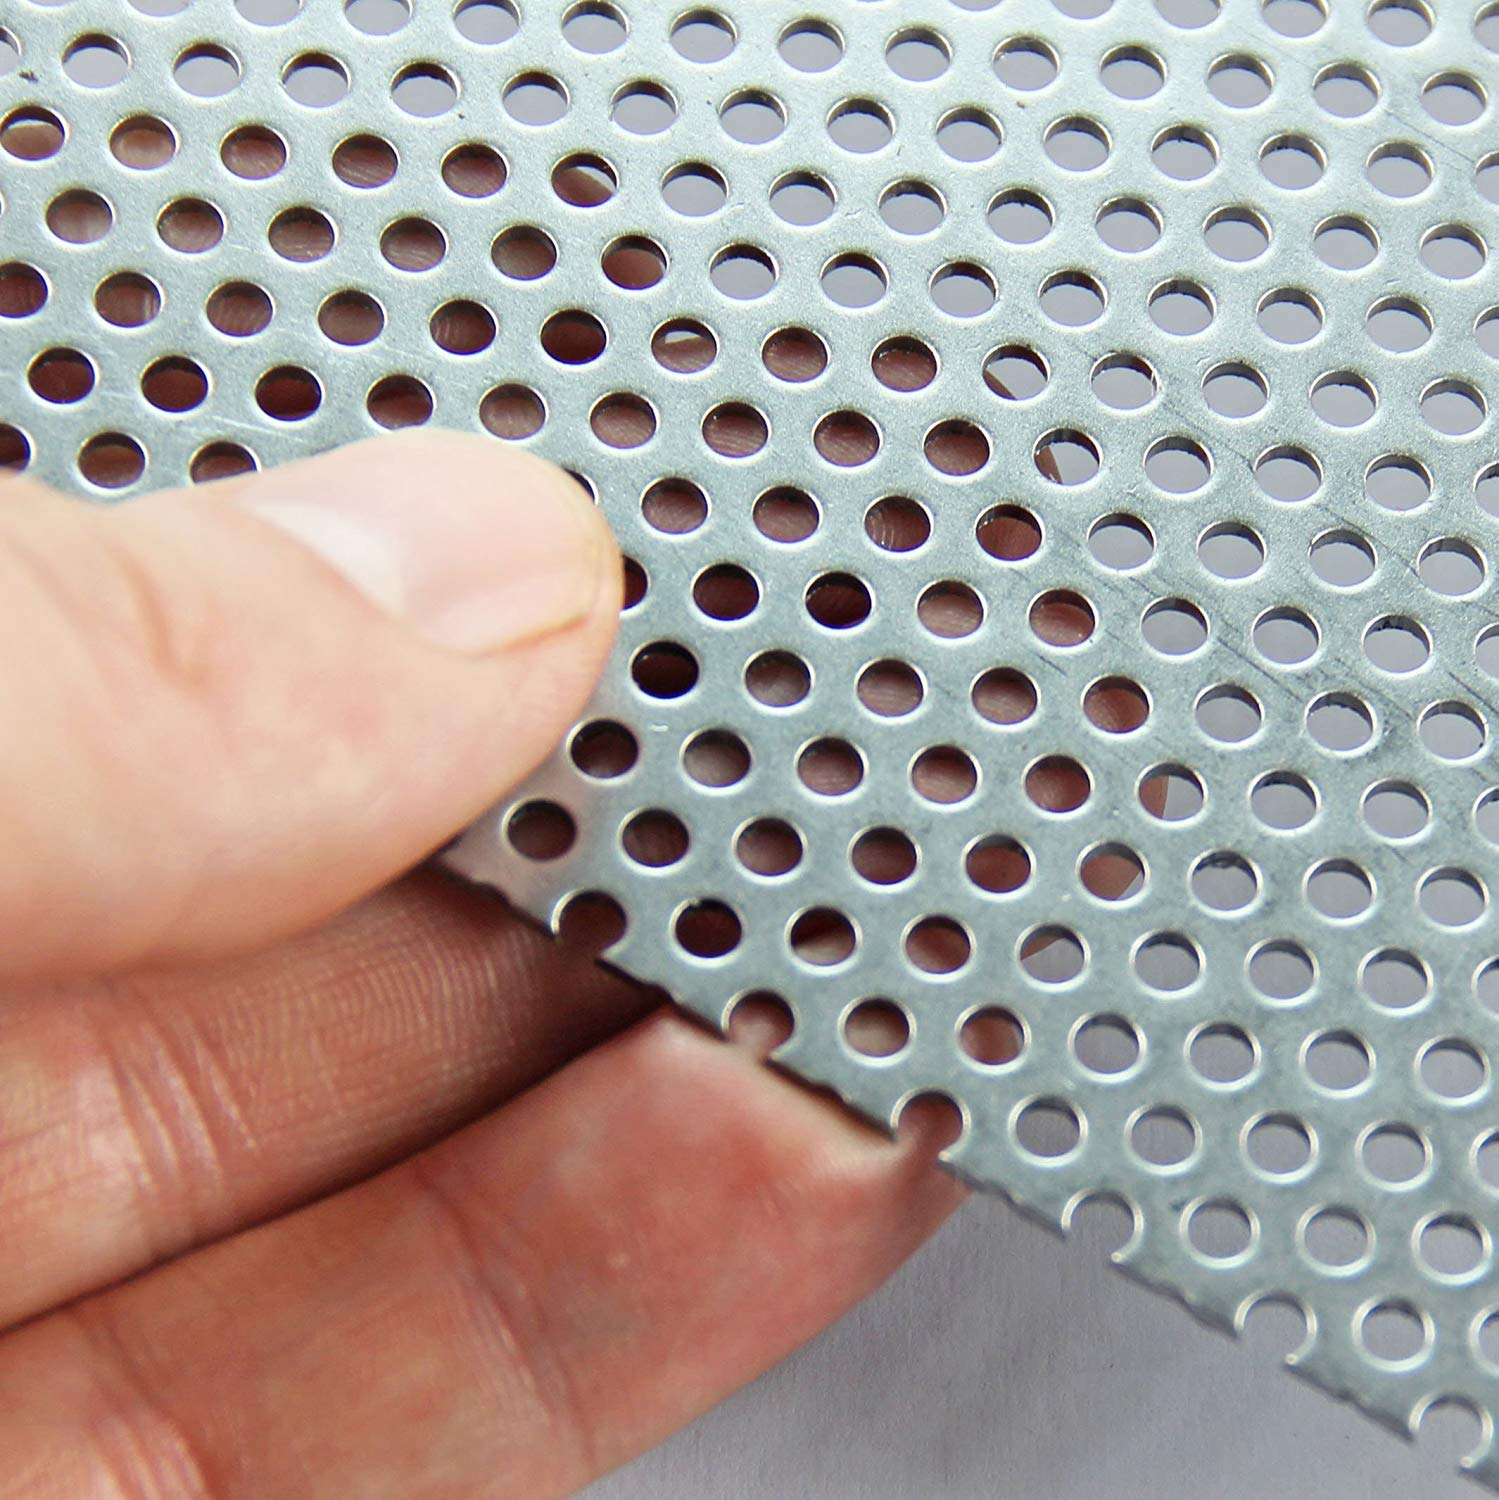 3mm Mild Steel Perforated Sheet (3mm Hole x 5mm Pitch x 1mm Thick) - A3 x 3 The Mesh Company